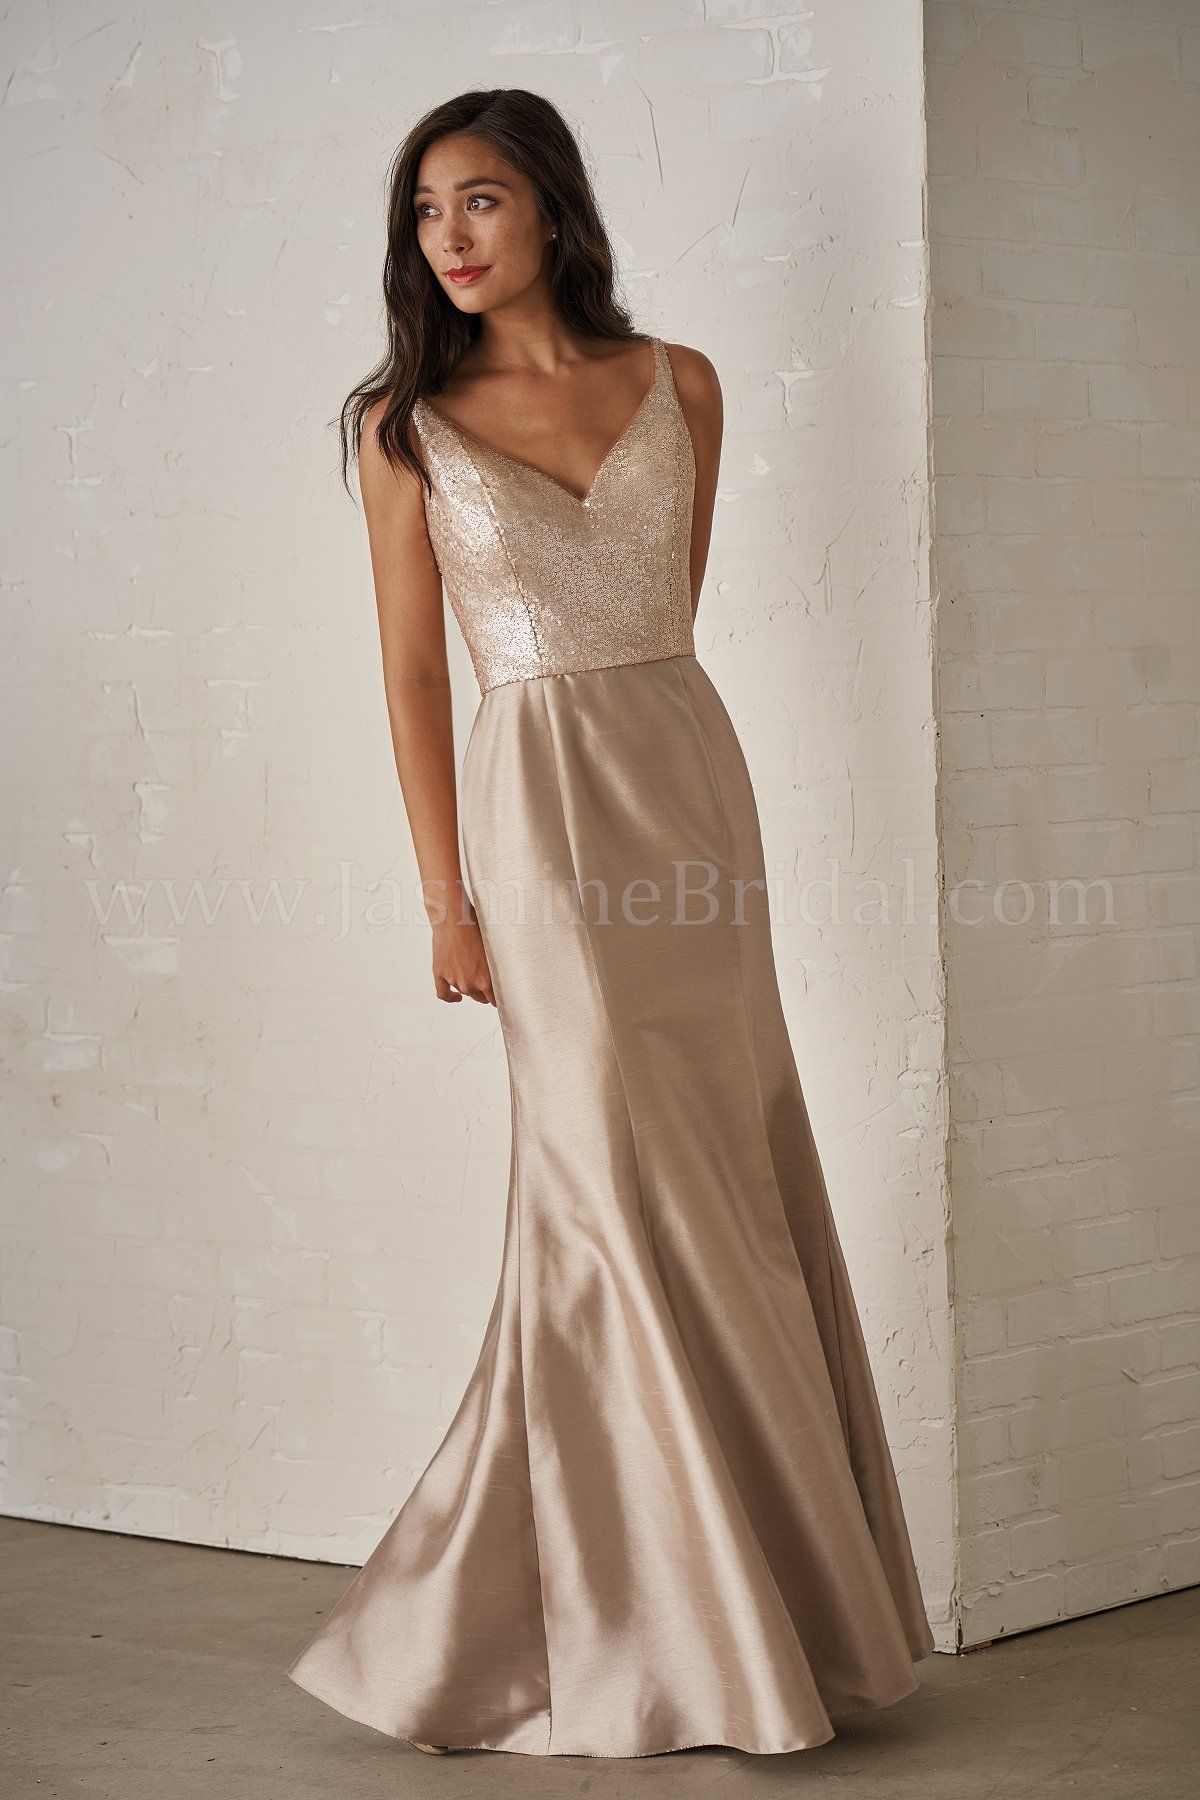 Jasmine bridal jasmine bridesmaids style p in light gold